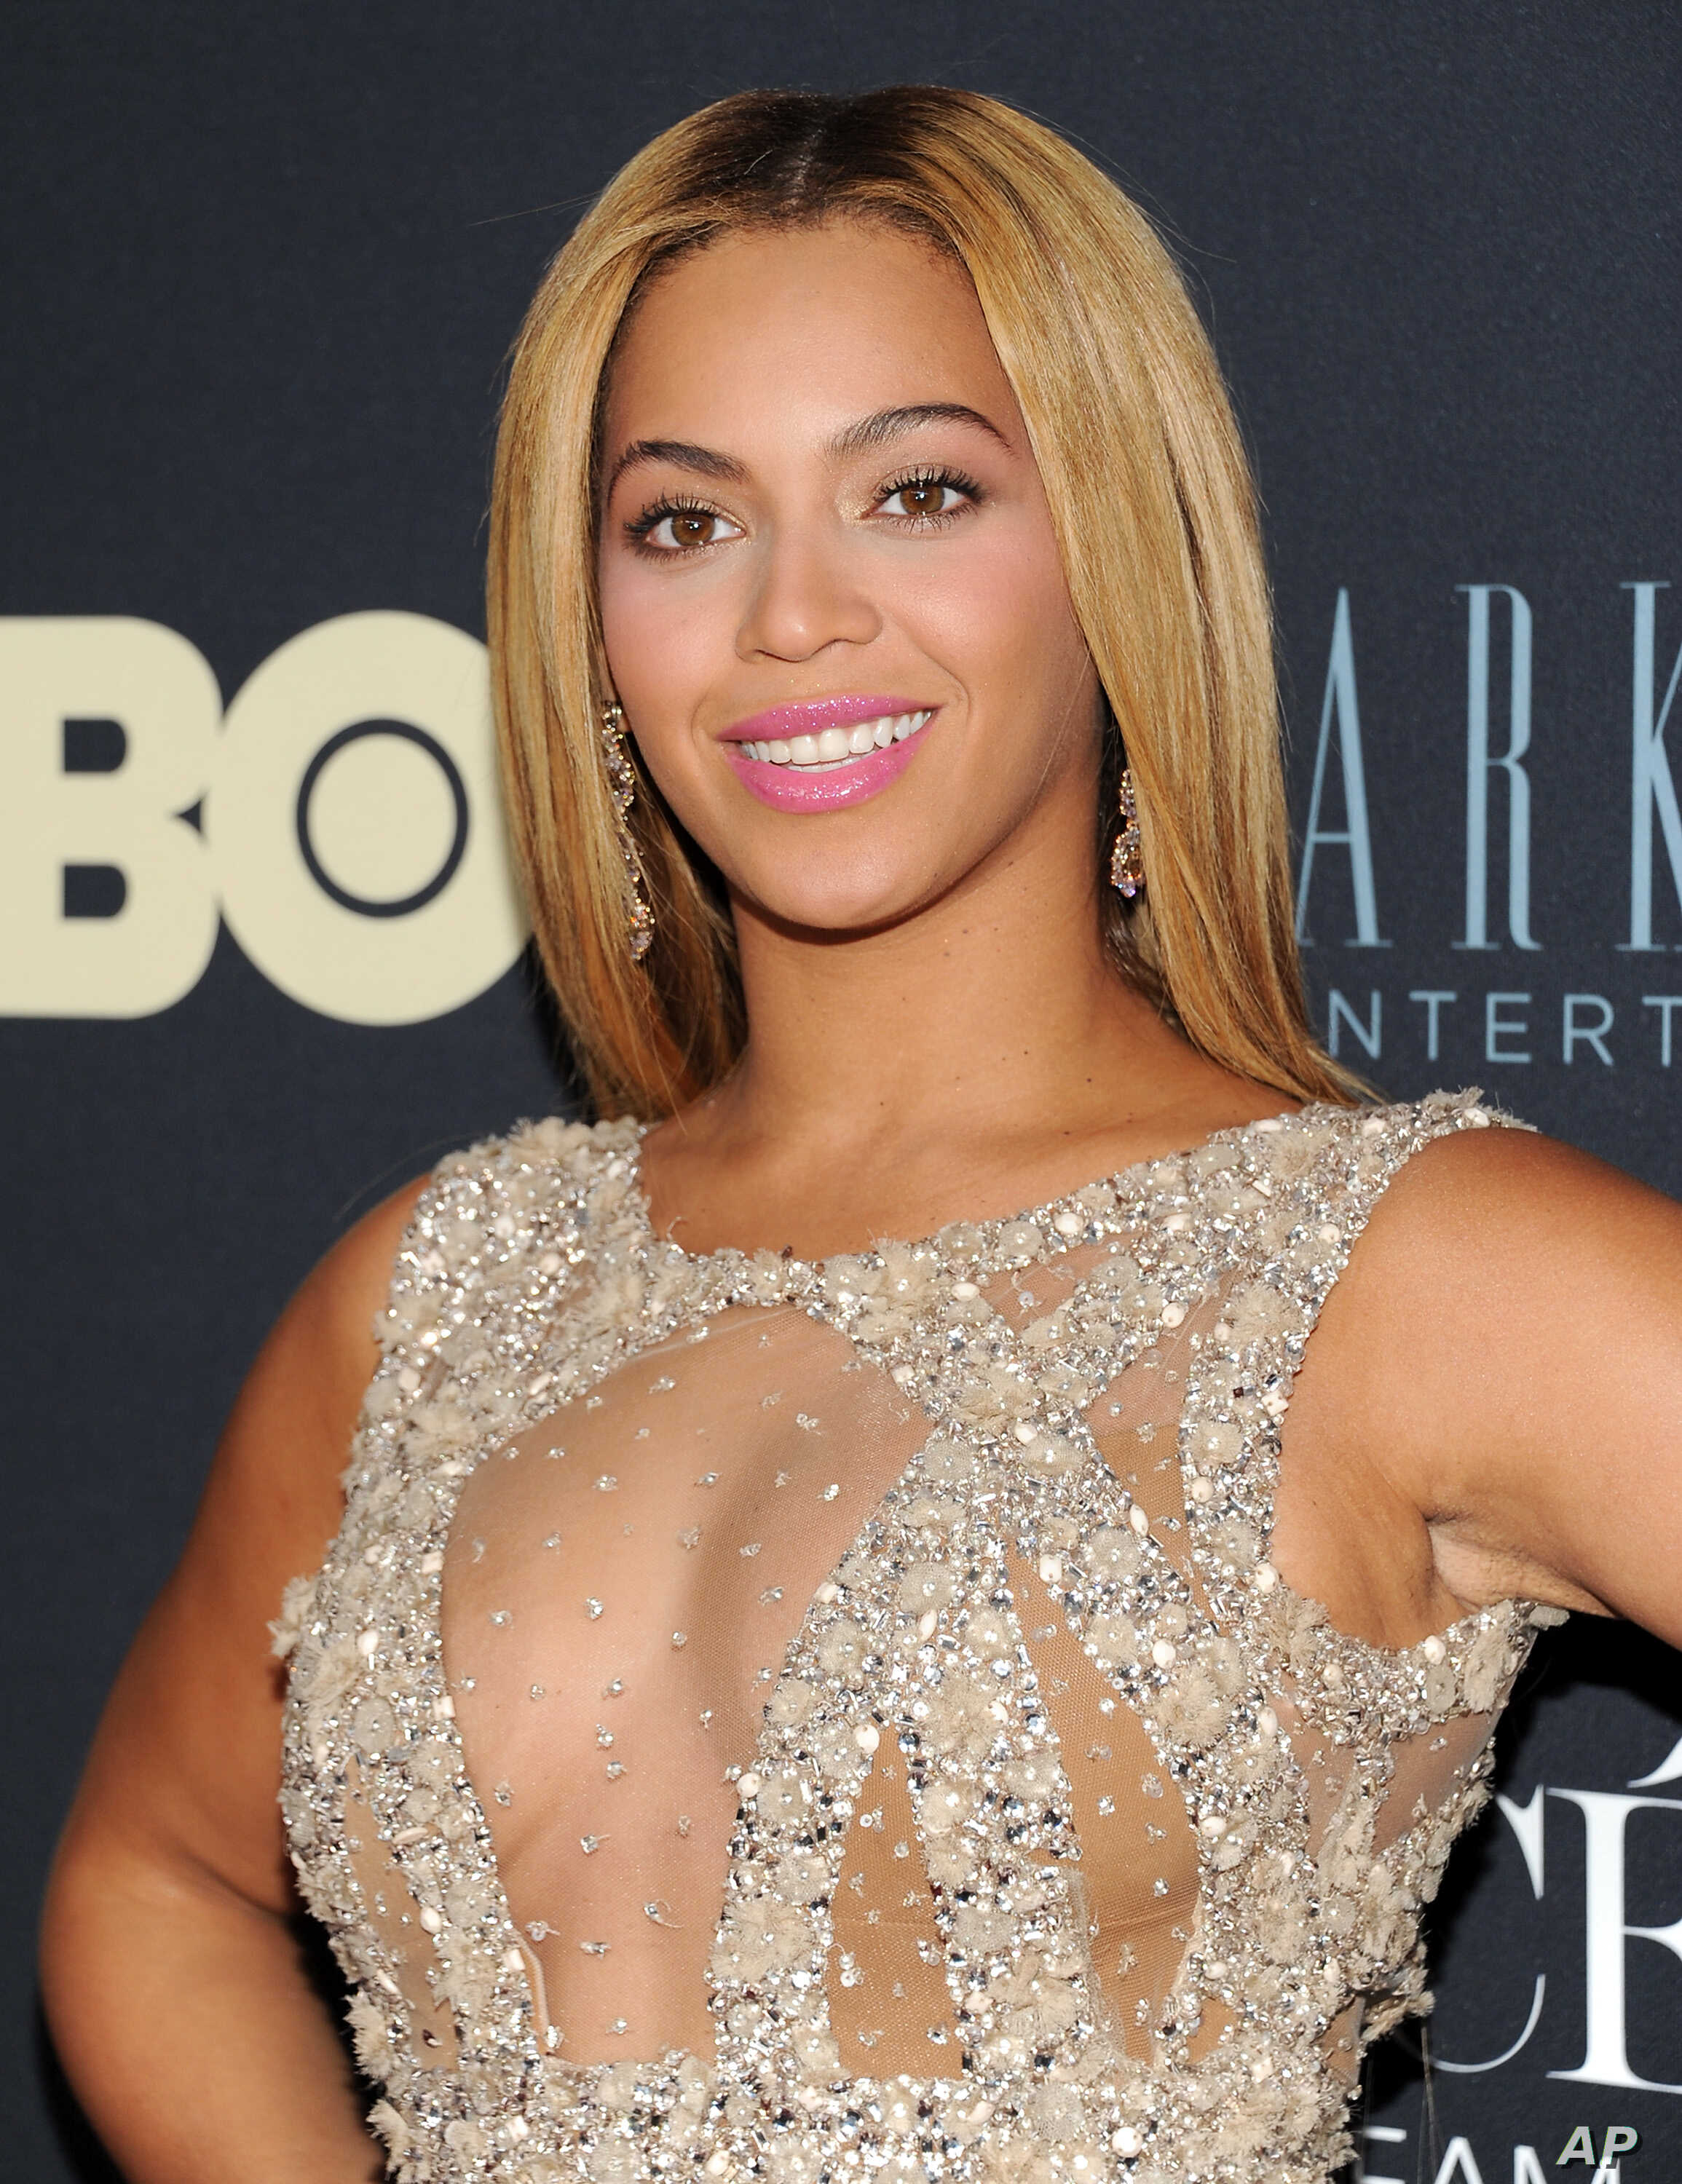 Beyonce Documentary Shows Marriage, Miscarriage, Baby